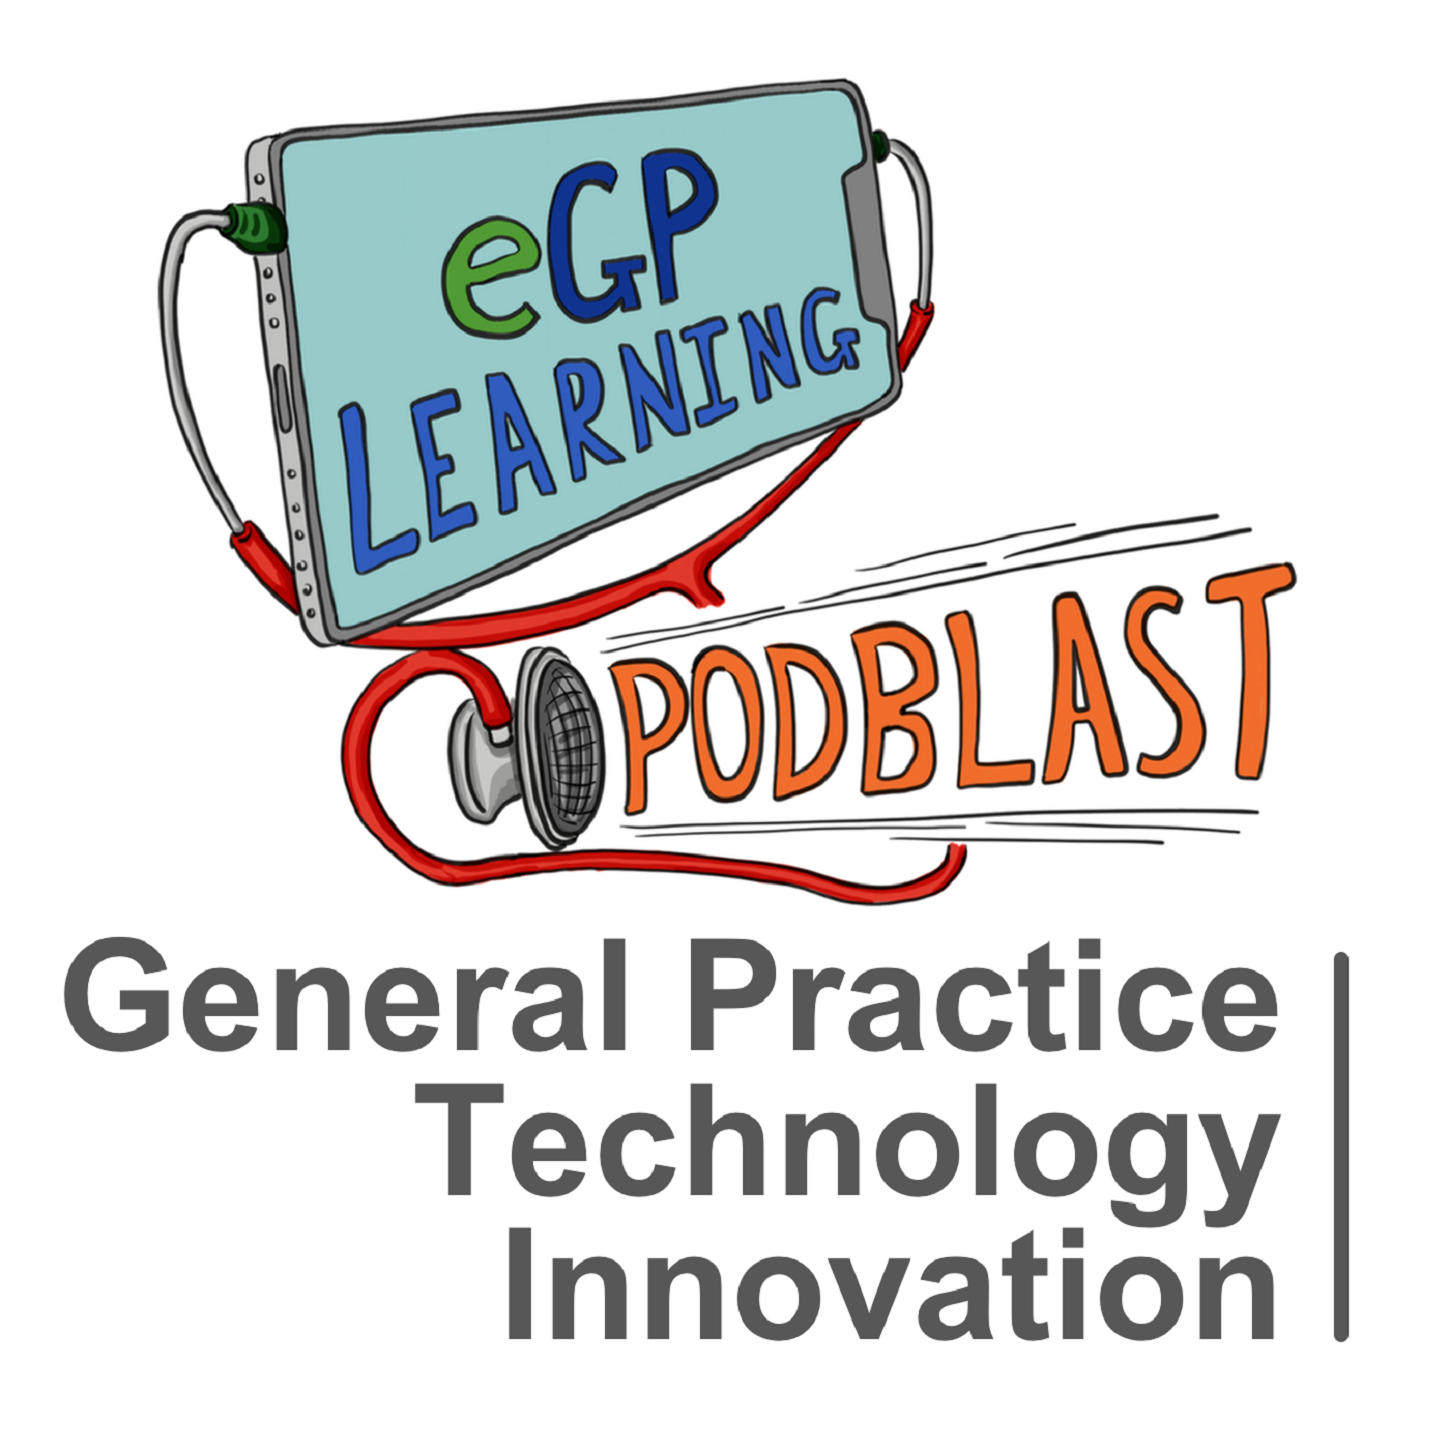 eGPlearning Podblast interview - Dr Keith Grimes the Medical Virtual Reality doctor